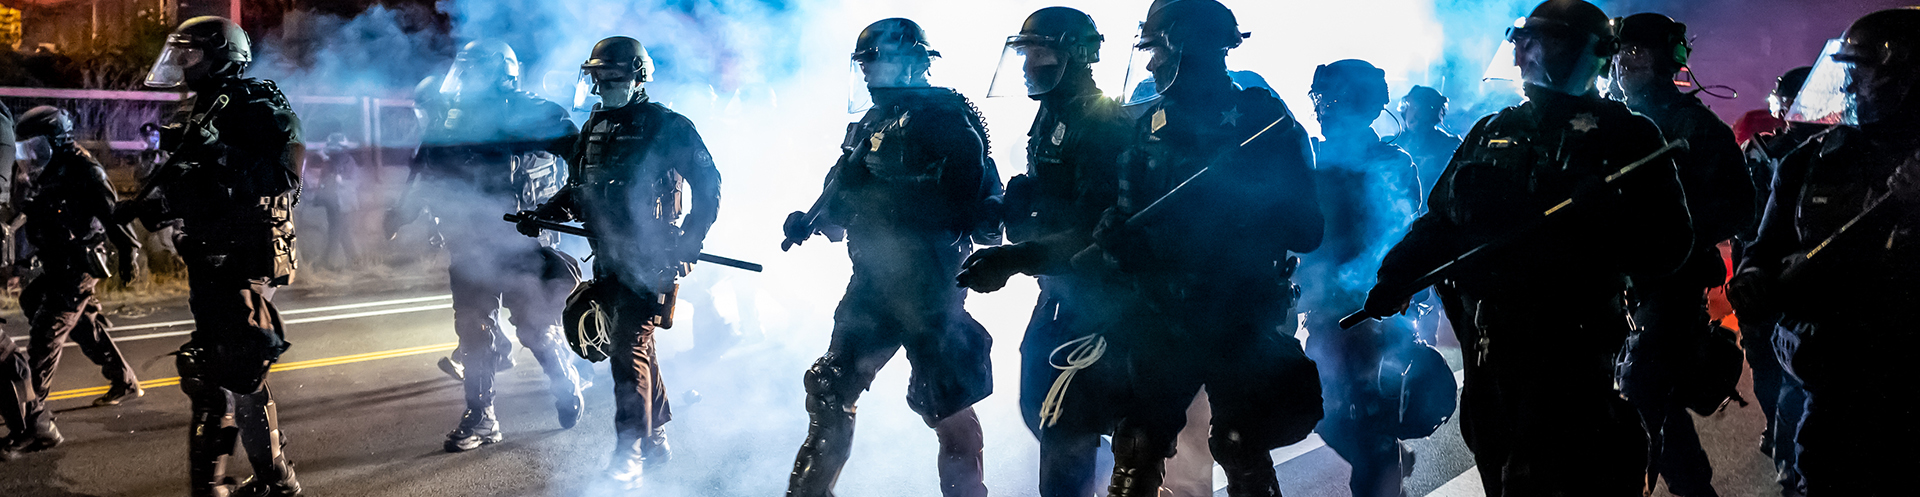 Conflict mediators apply lessons from gang disputes and foreign elections to defuse political violence across US,